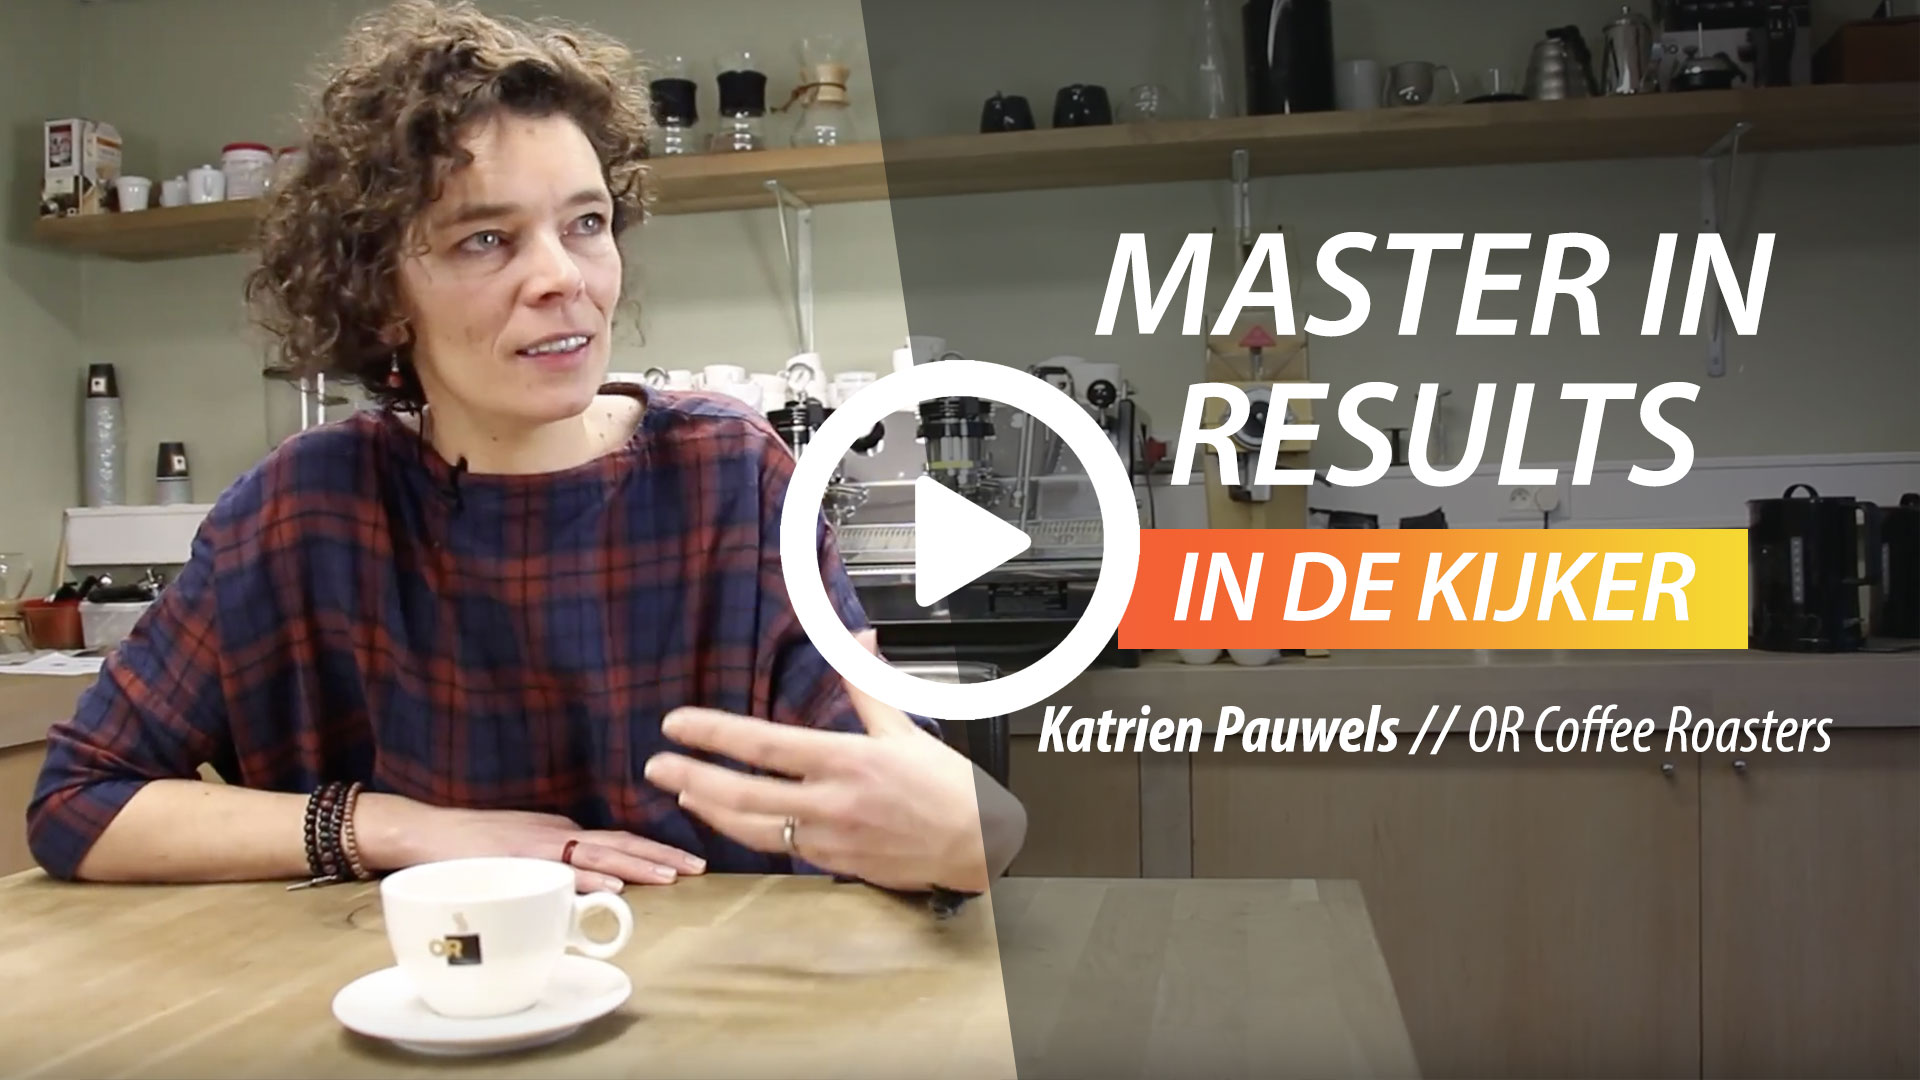 Master in Results